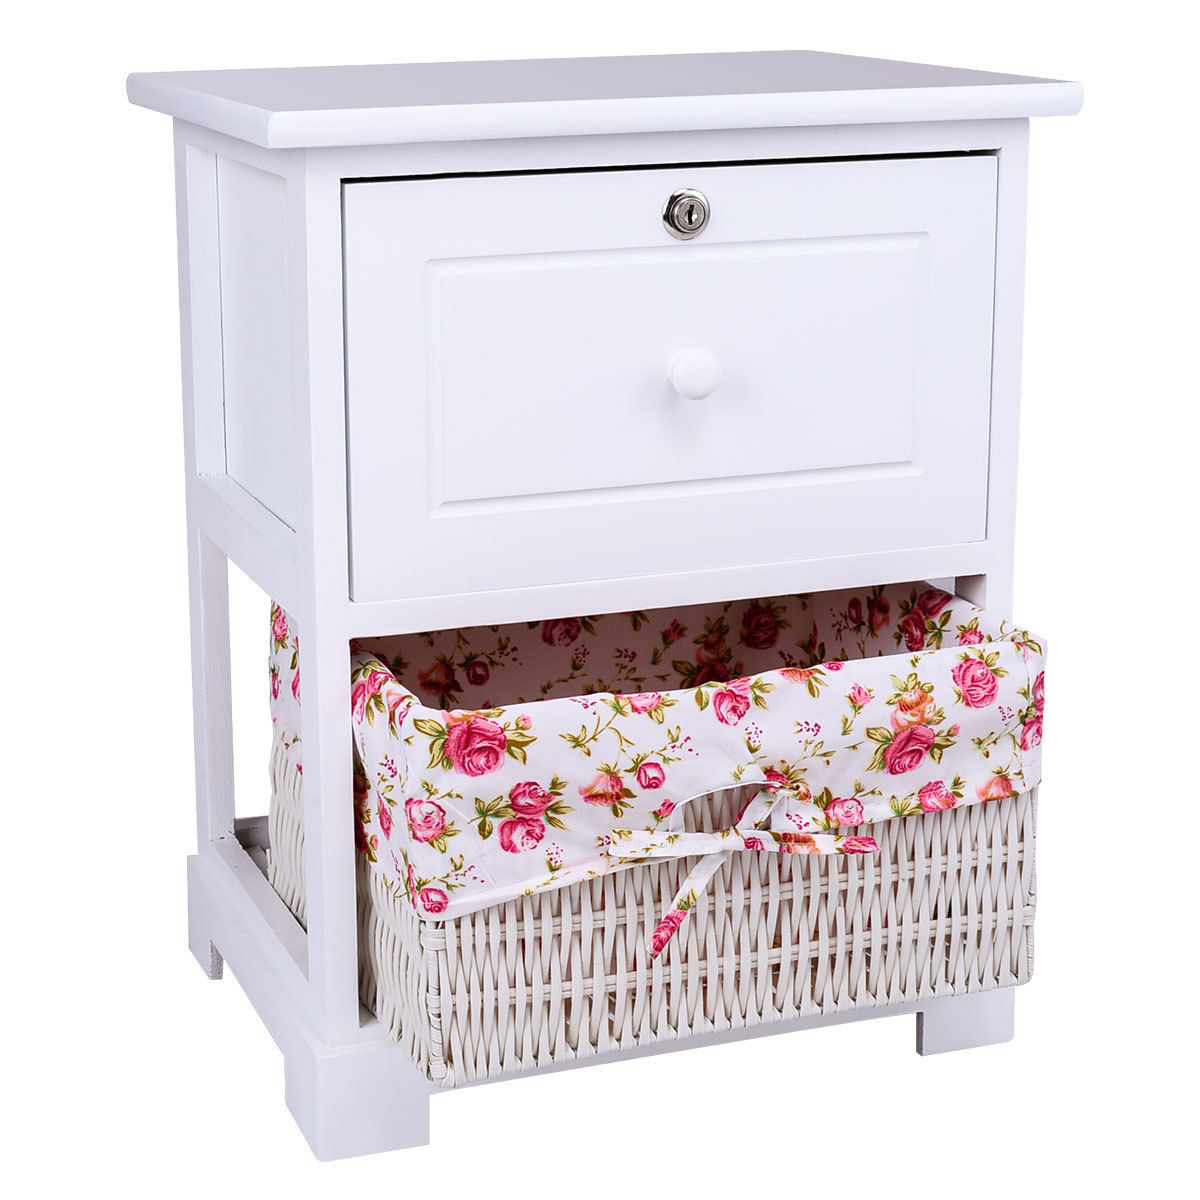 Gymax 2PCS 2 Tiers Wood Nightstand1 Drawer Bedside End Table Organizer W/Basket White - image 6 of 8